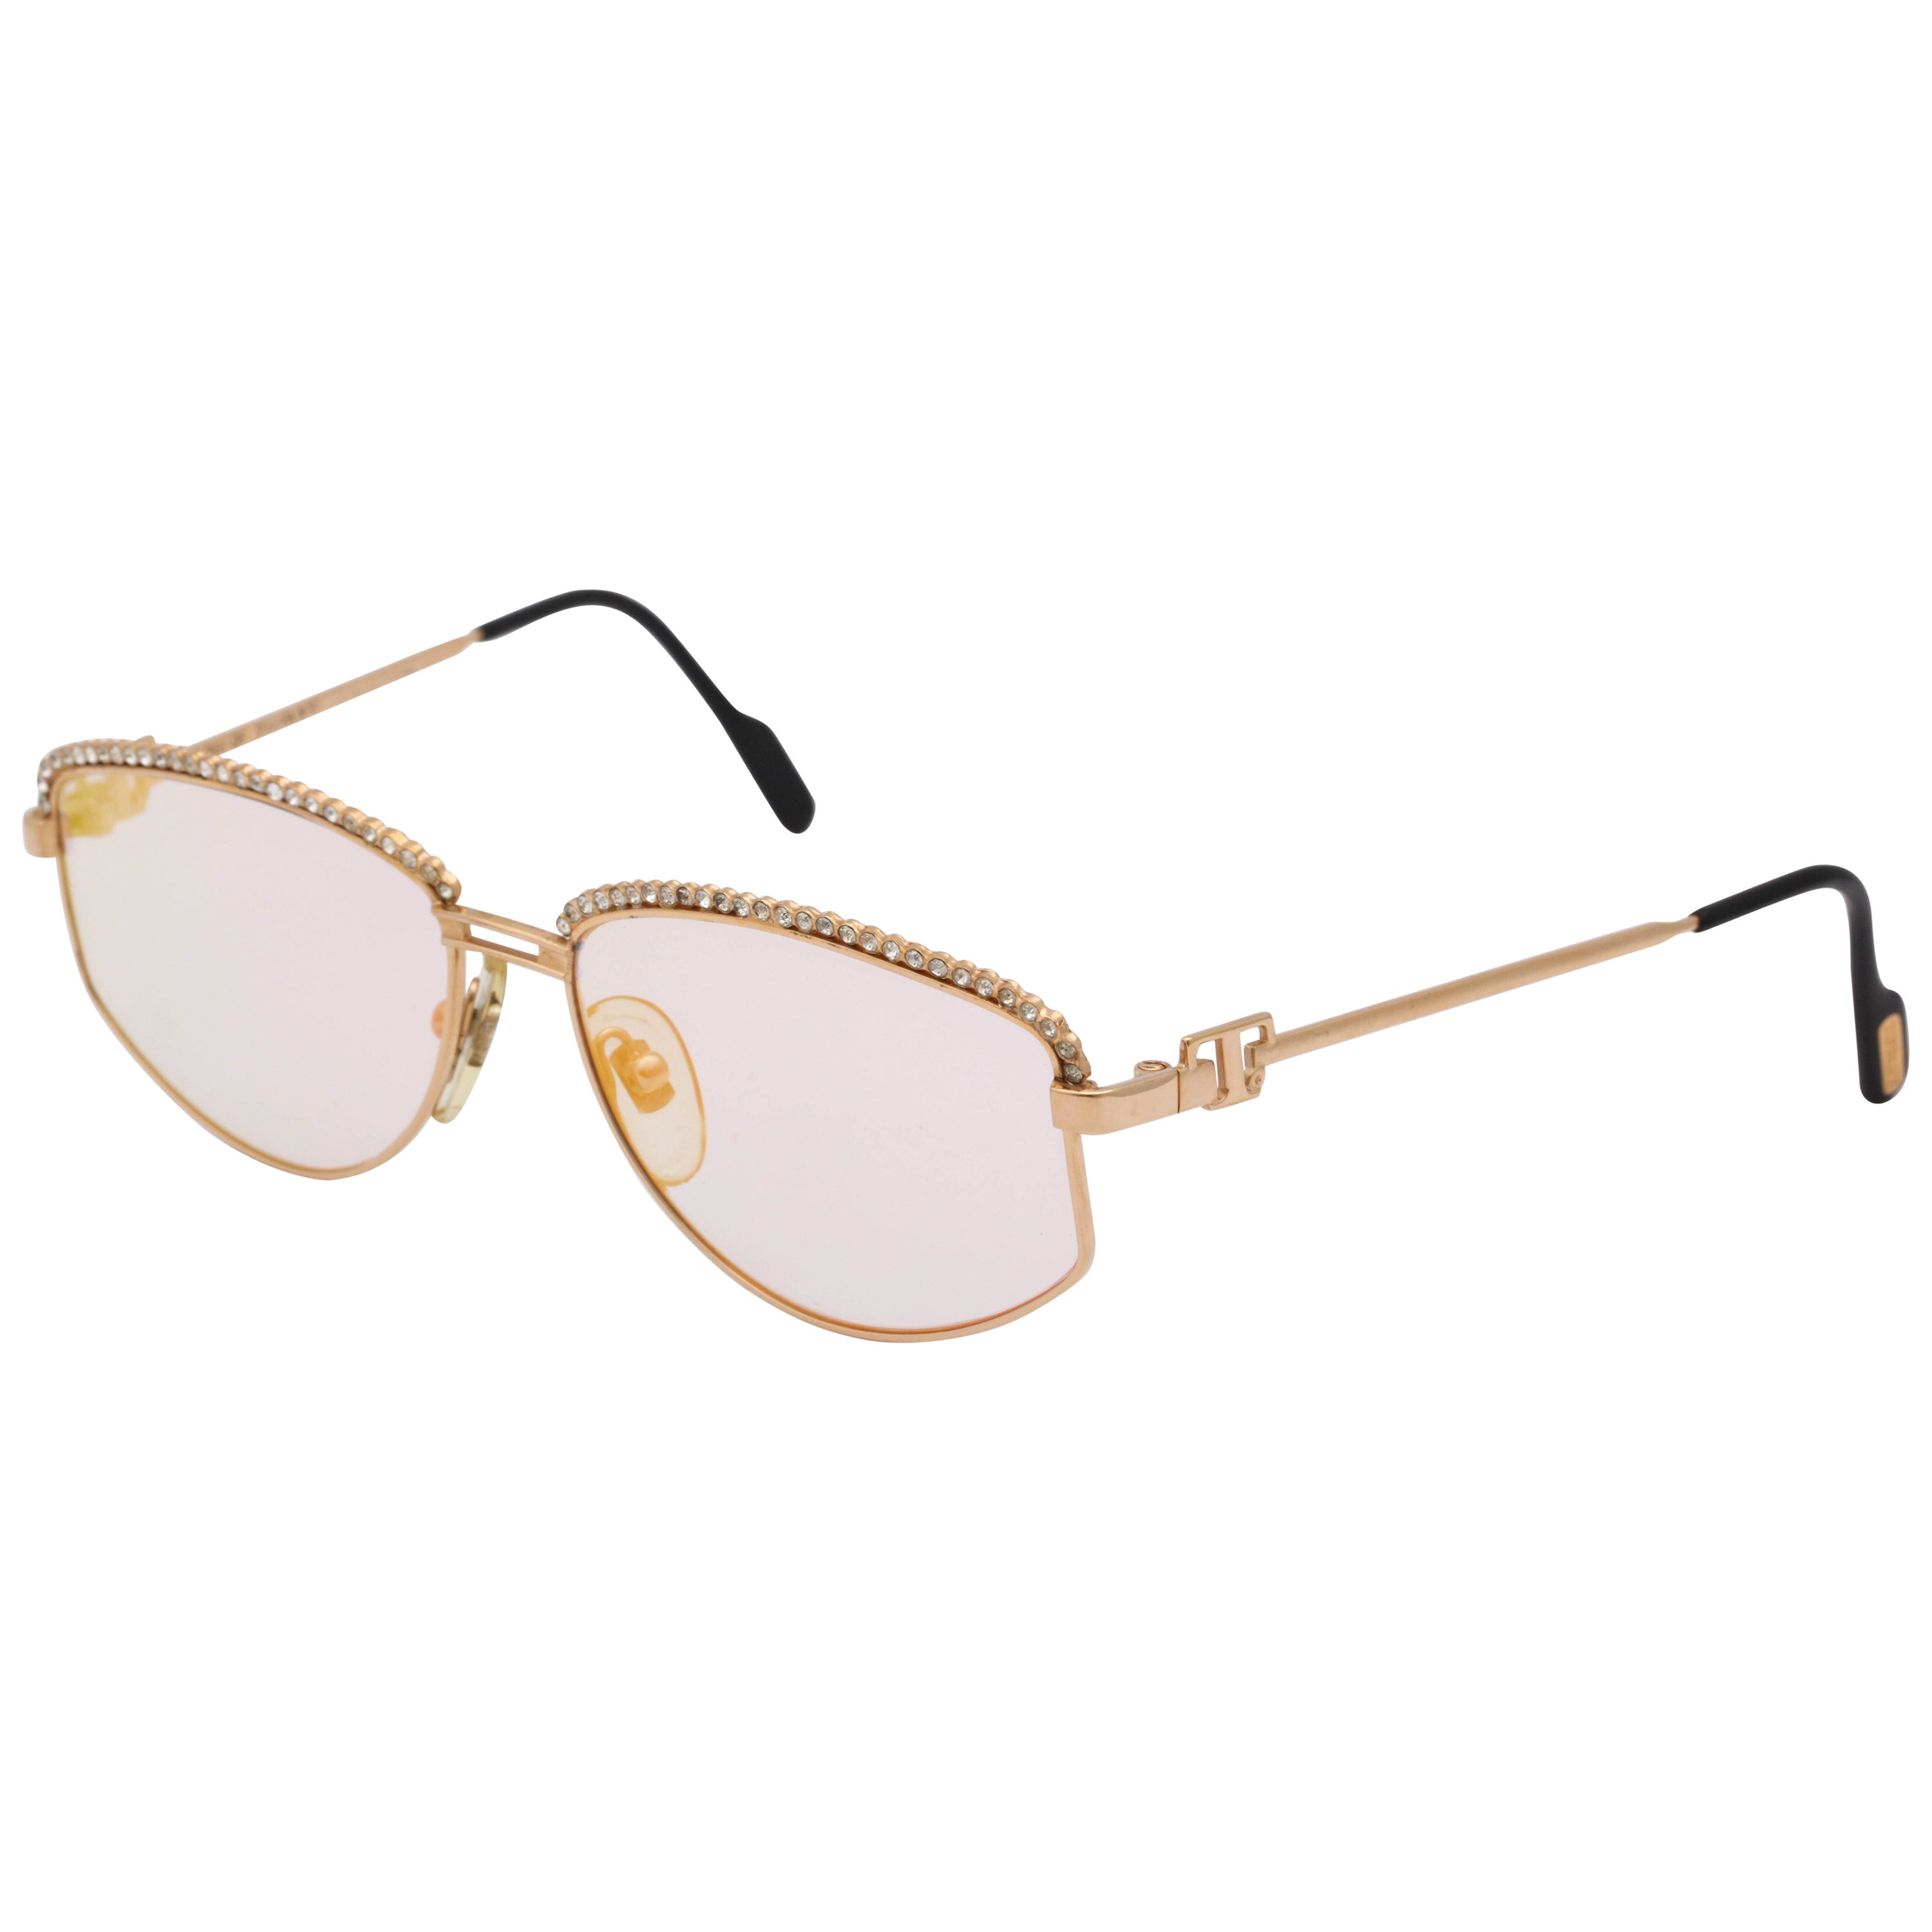 76fcca603 Soloist Of Tiffany Vintage Sunglasses T1/04 For Sale at 1stdibs